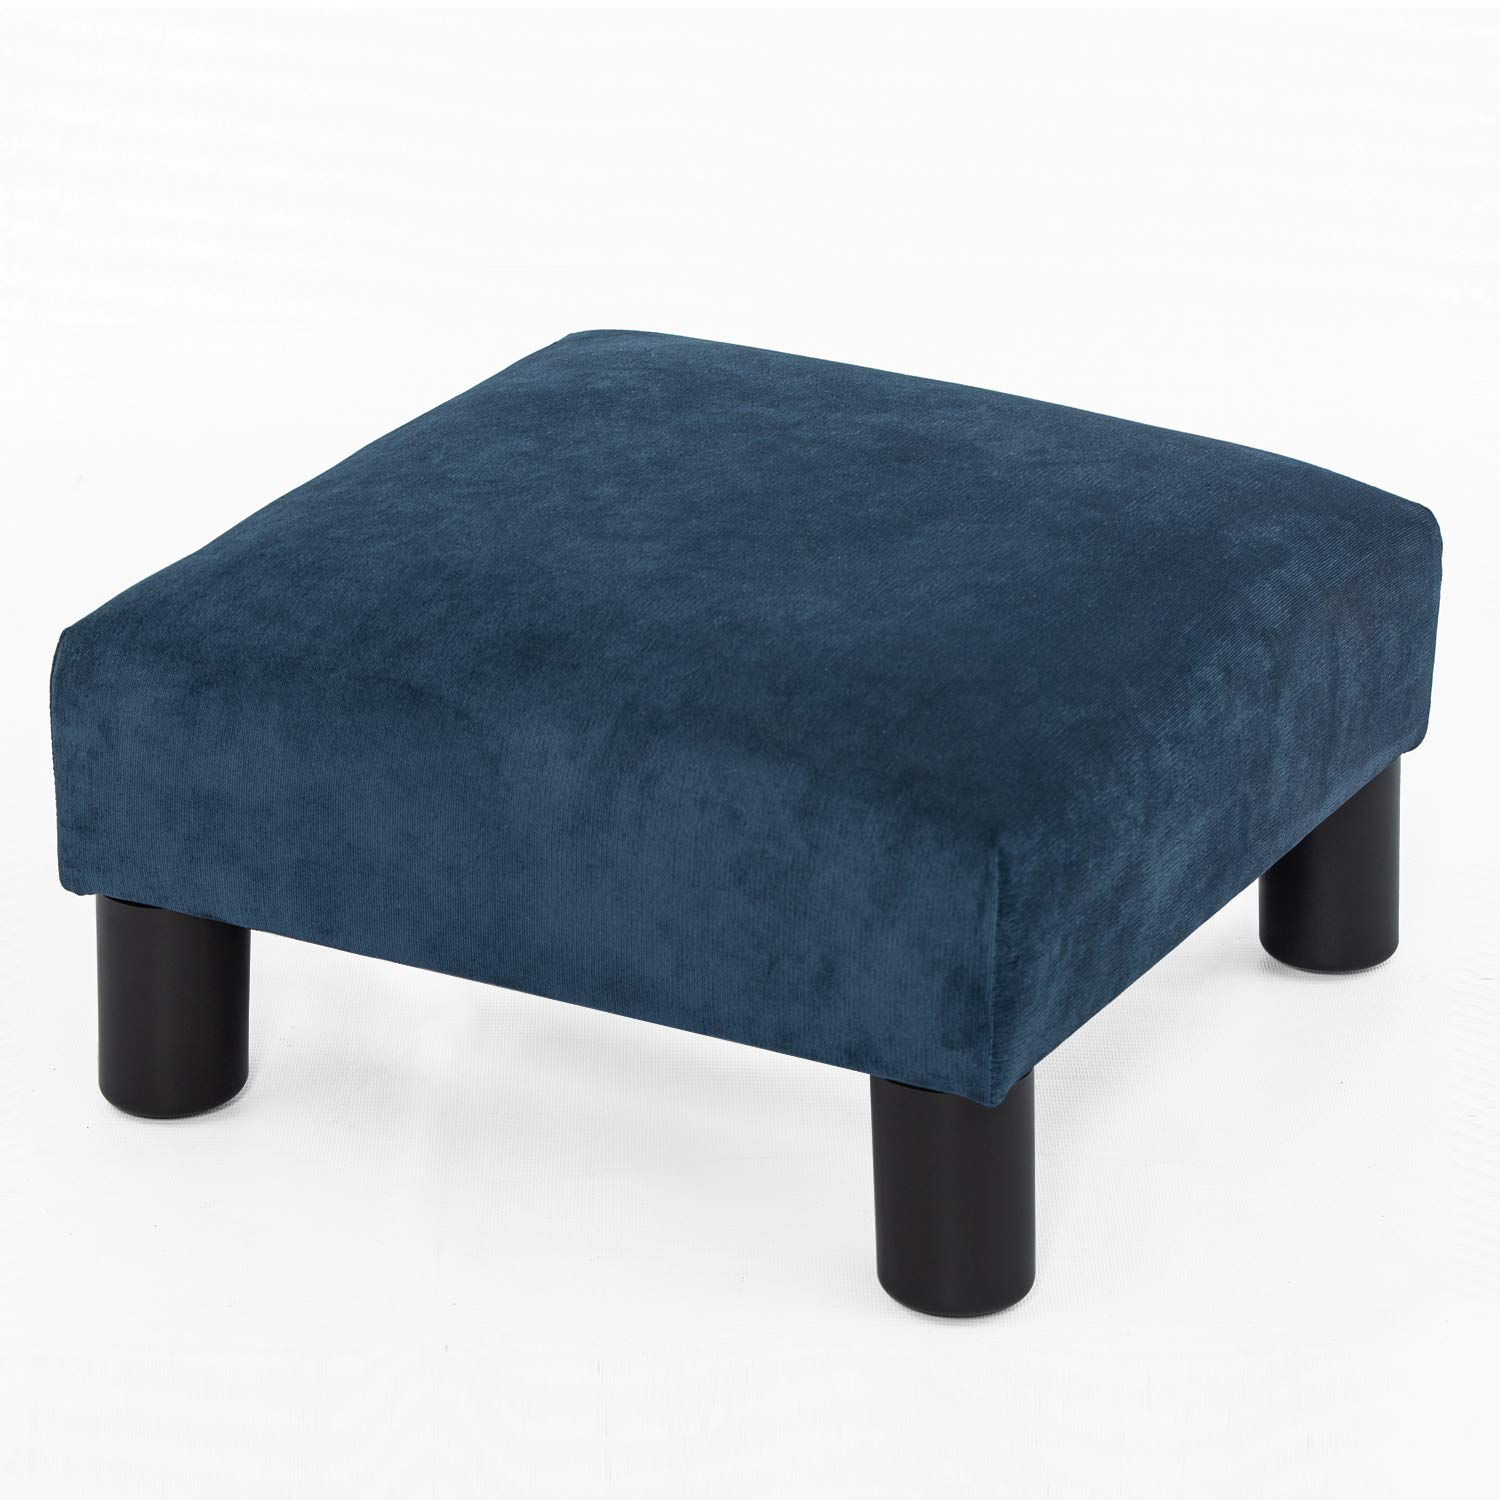 Joveco Ottoman Footrest Stool Small Fabric Square Footstool (Navy Blue) by Joveco